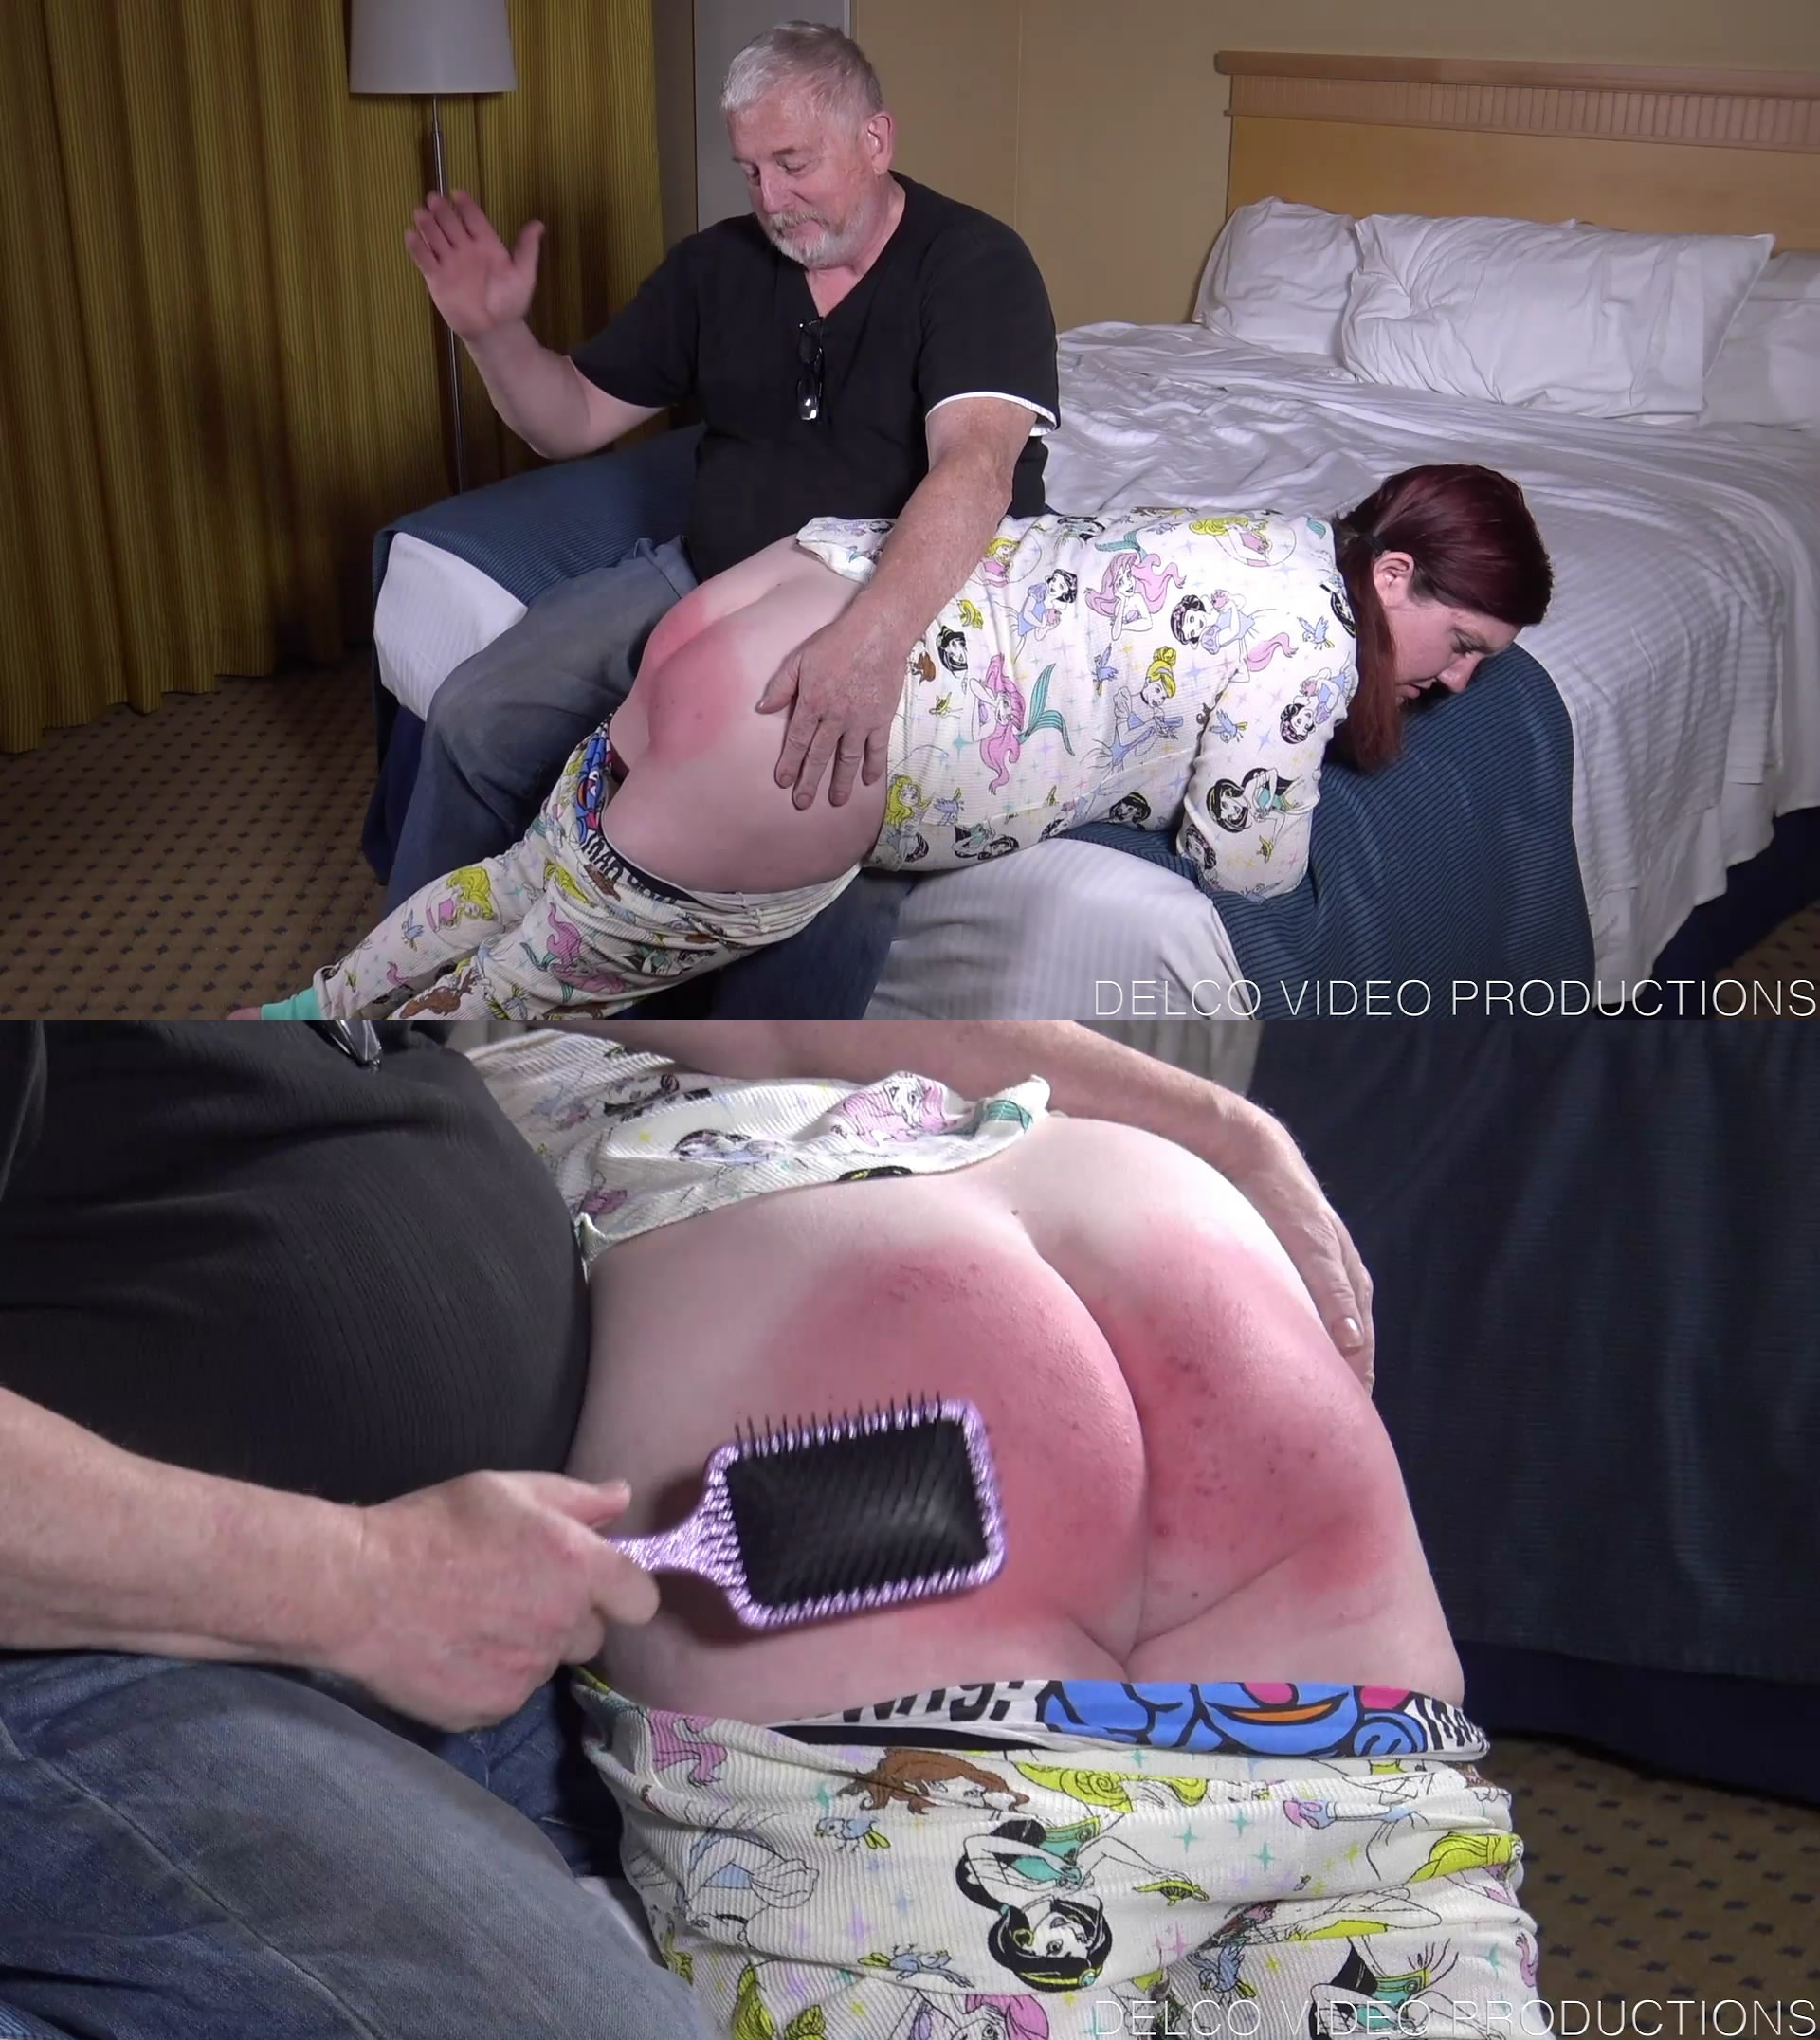 snapshot20190520222408 - Delco Video Productions – MP4/Full HD – Late Checkout Spanking